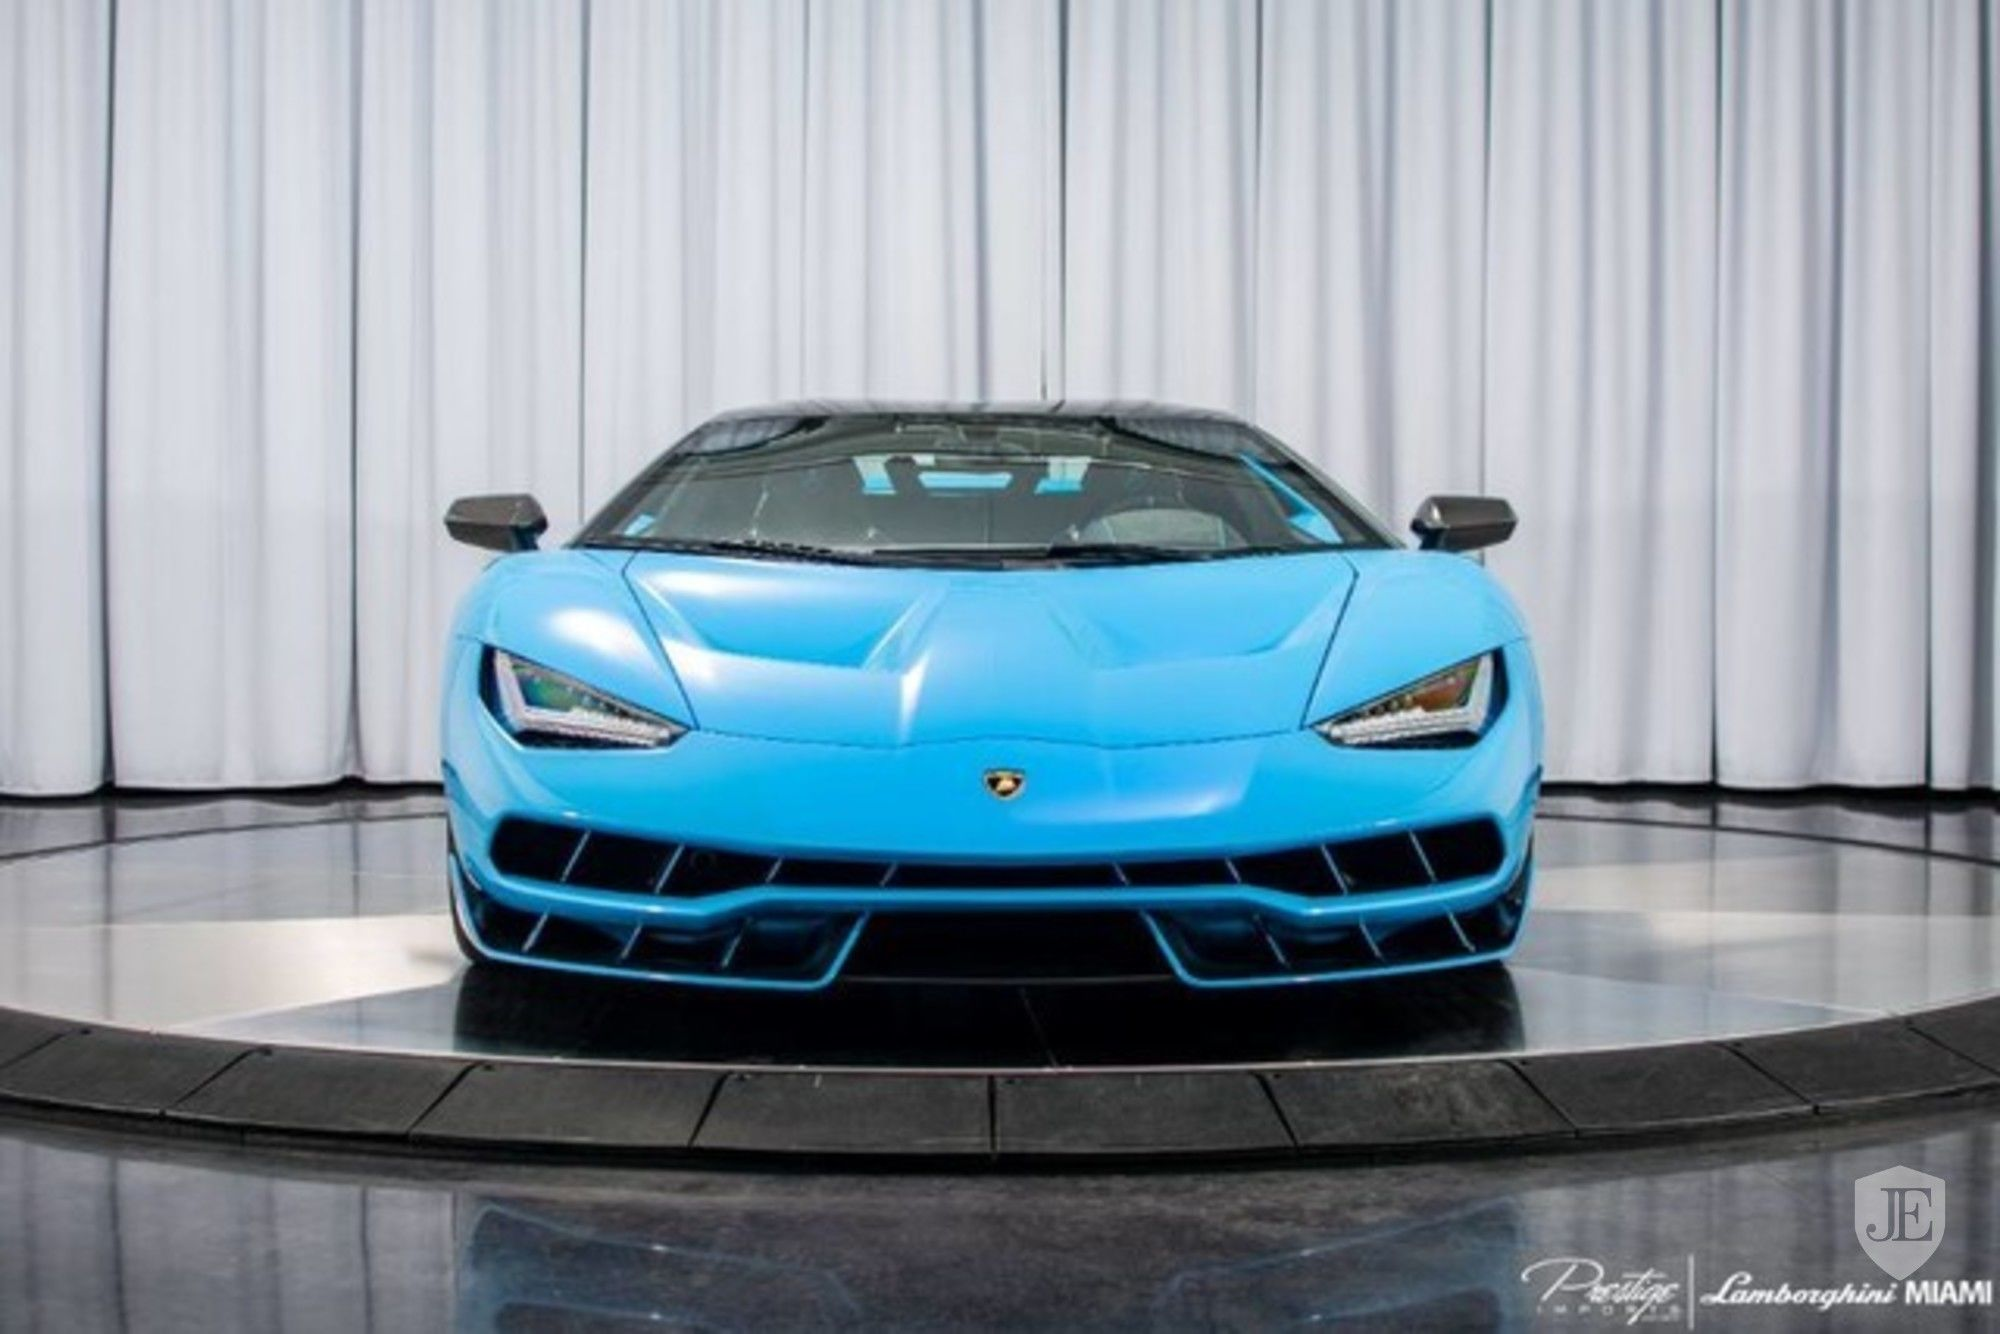 Lamborghini Centenario Coupe for sale (2)